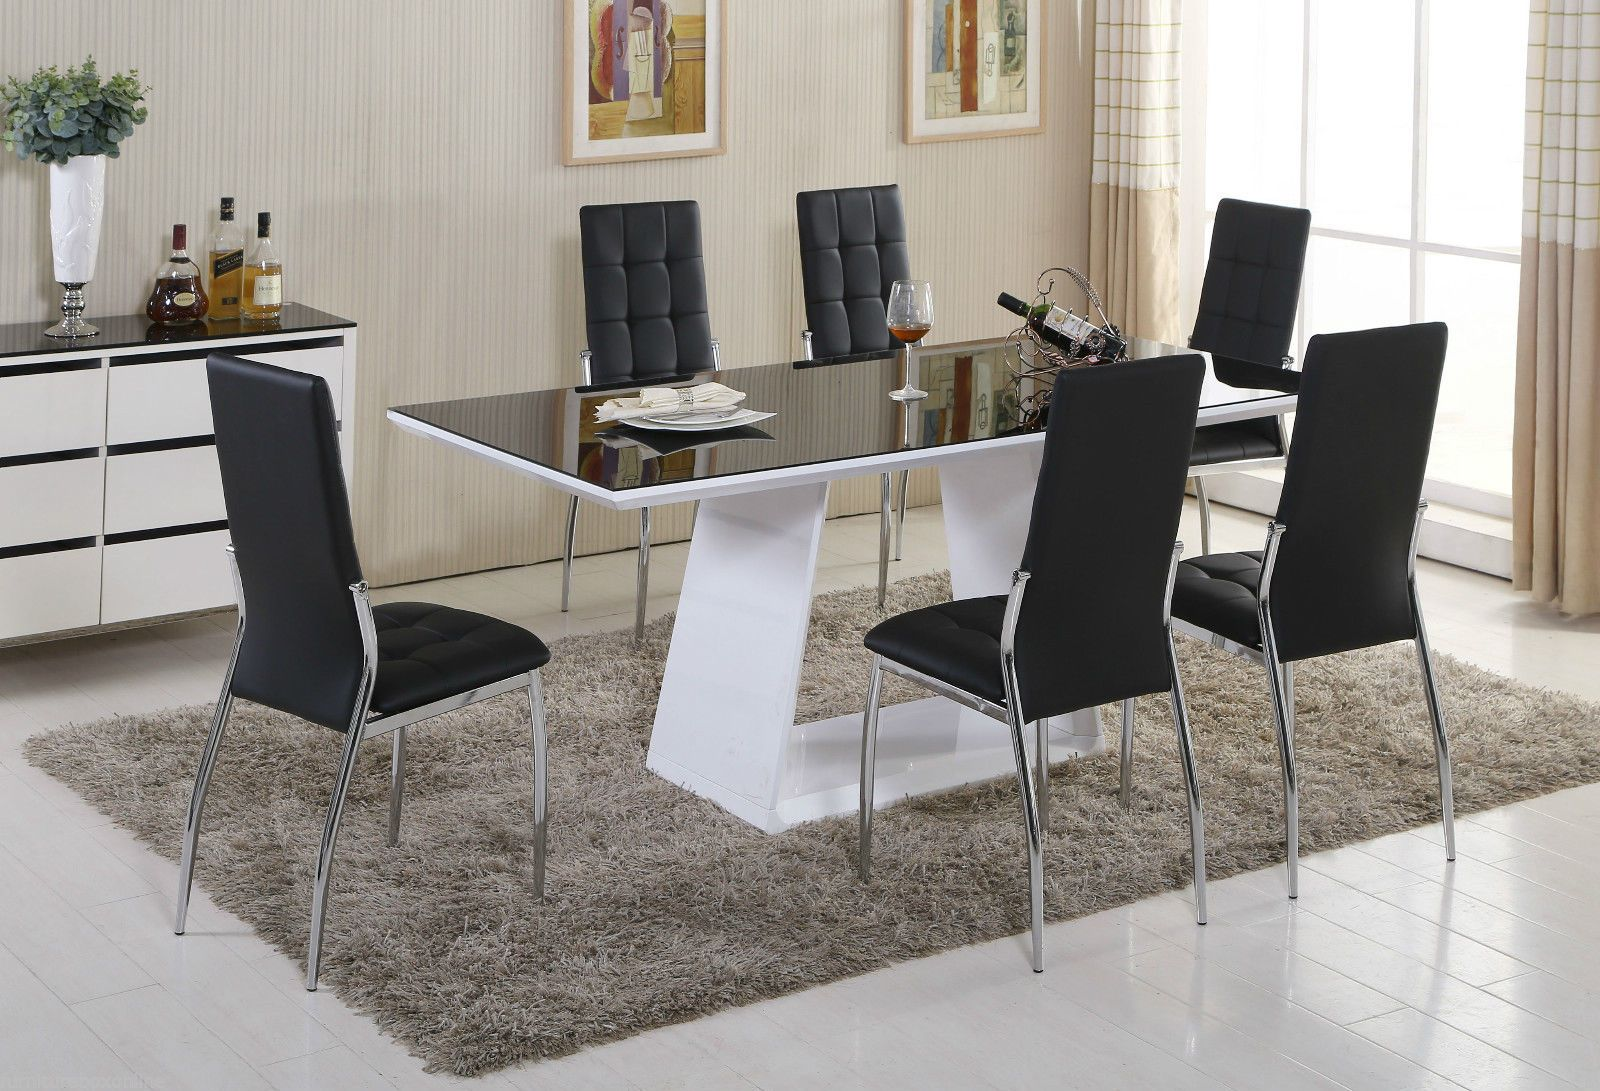 Dining Room Table, Dining Table And Chairs Black And White Beautiful Modern  Dining Table Chairs Compact Black Modern Oval Dining Table Ablack And White  ...